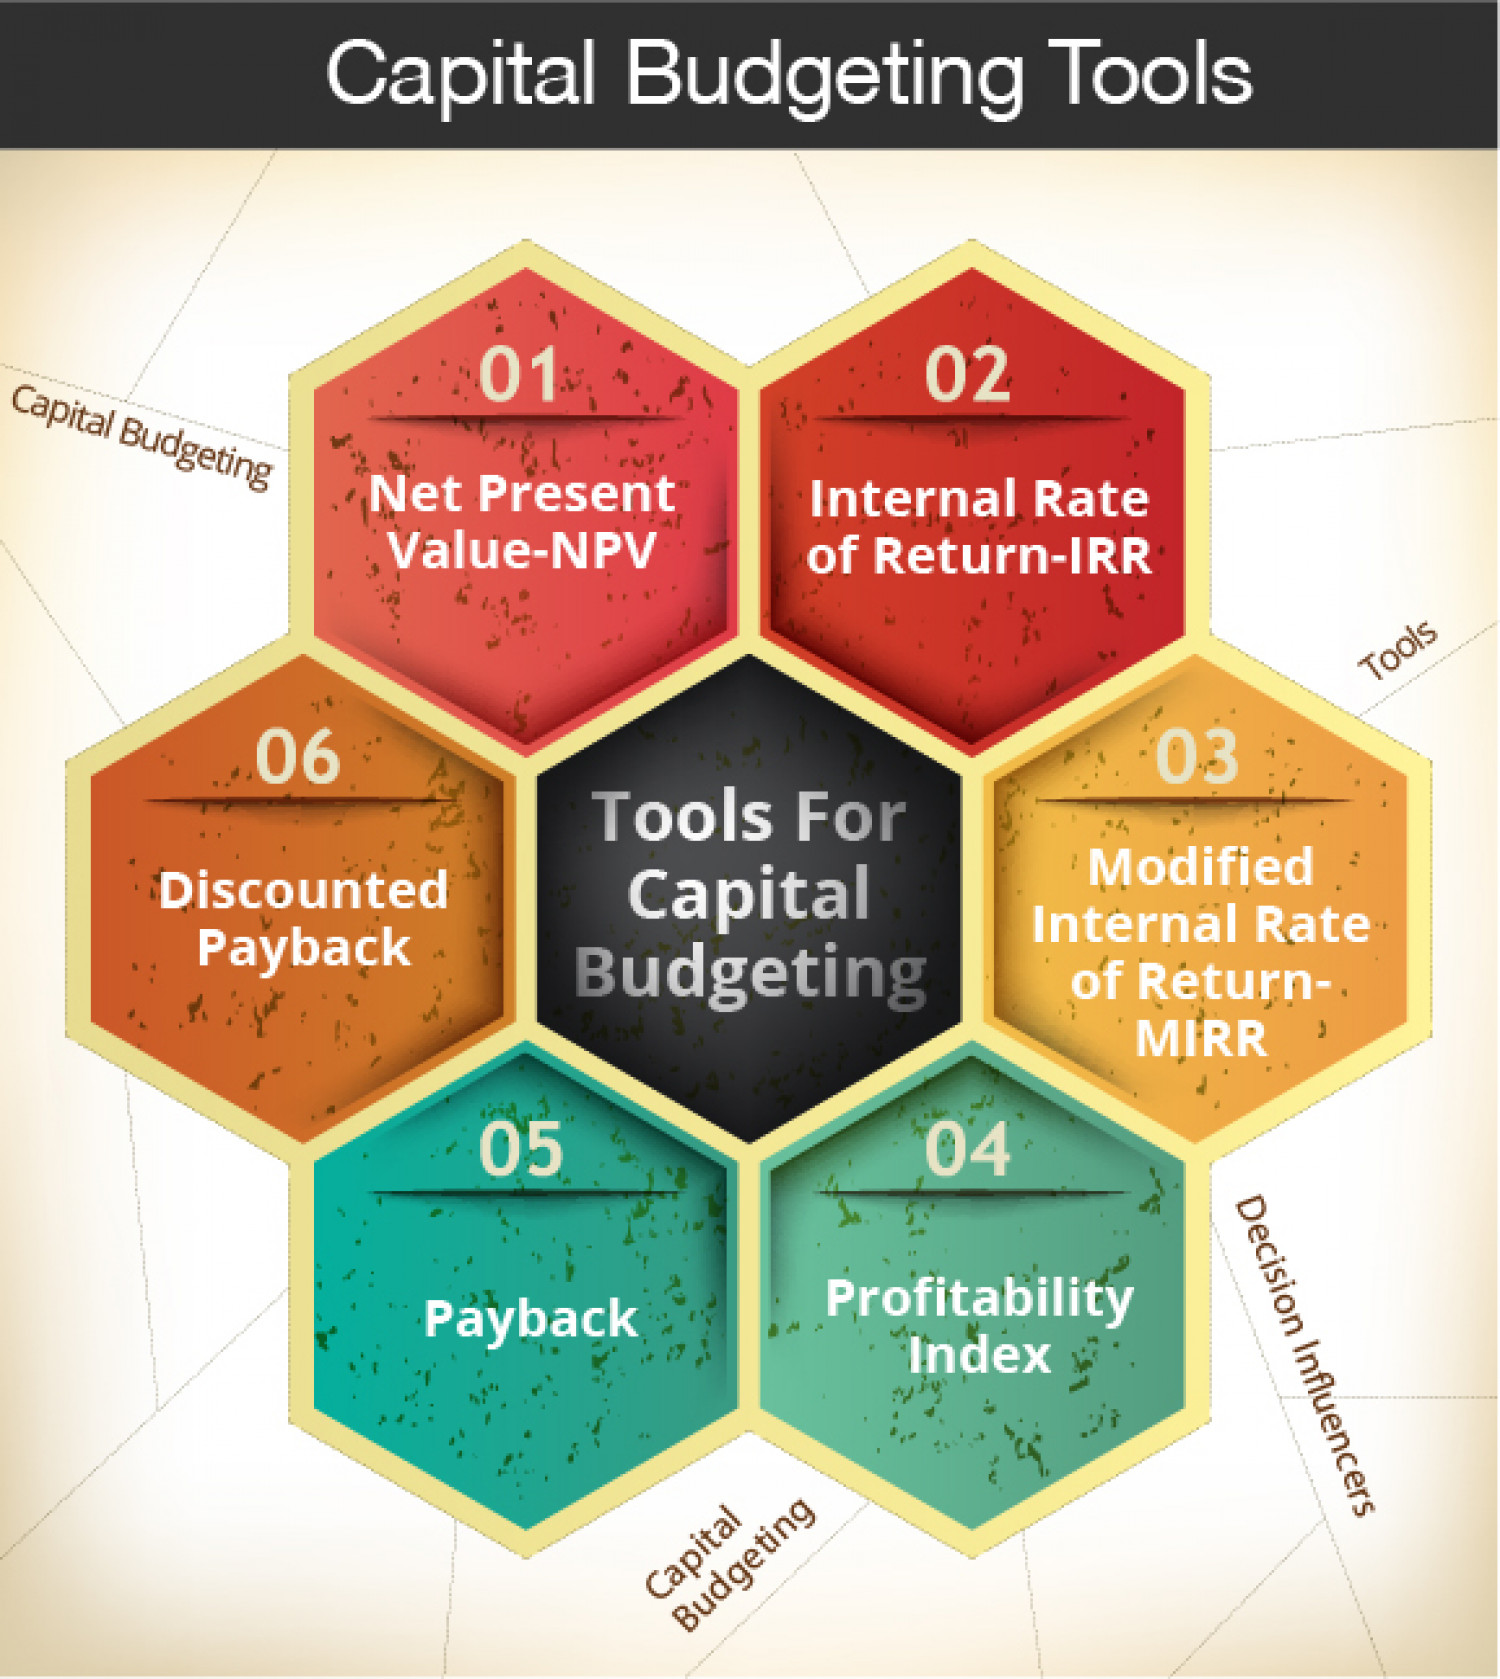 Capital Budgeting Tools Infographic